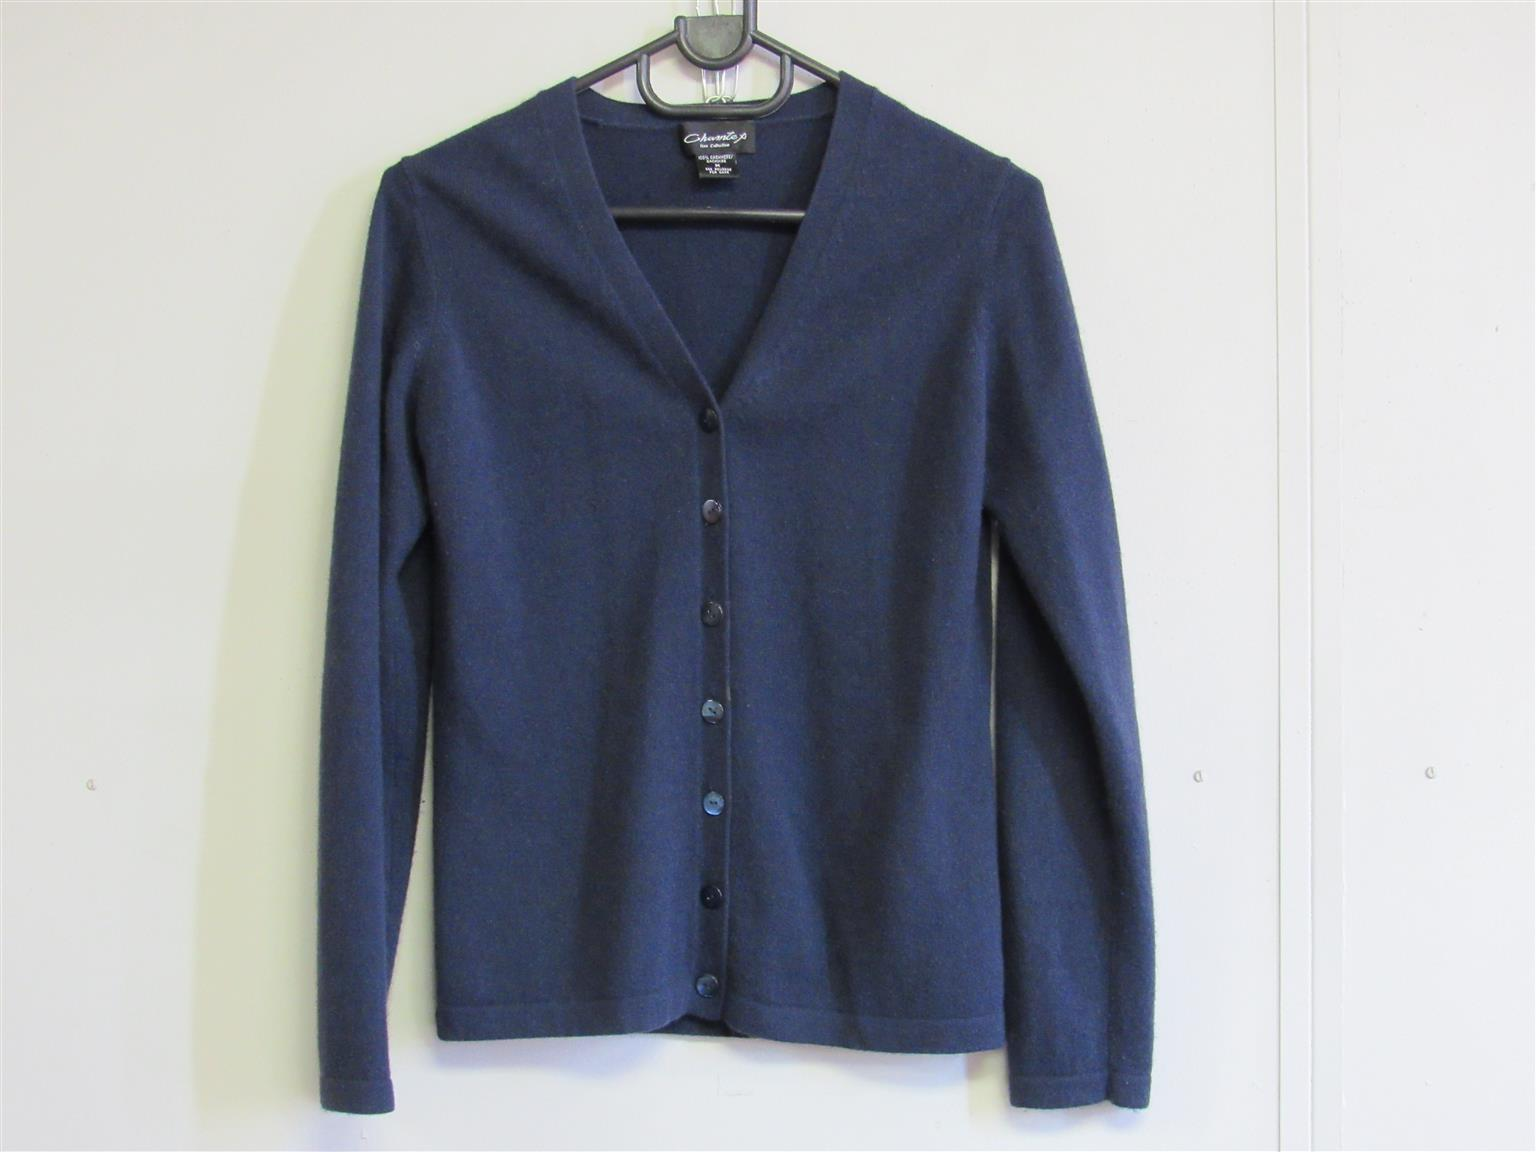 Cashmere Navy Cardigan with buttons